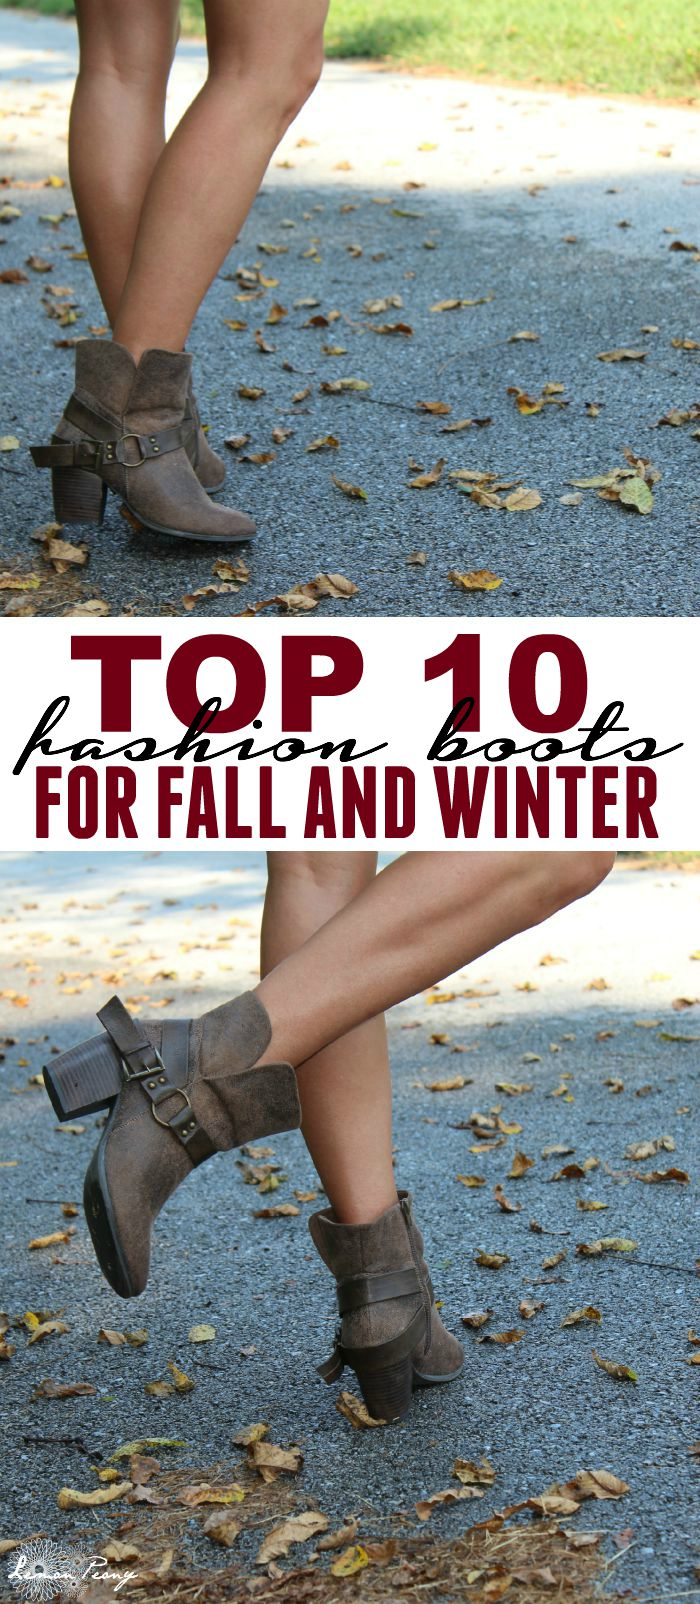 Top 10 Fashion Boots and Booties for Everyday Modest Outfit Styles and Trends!